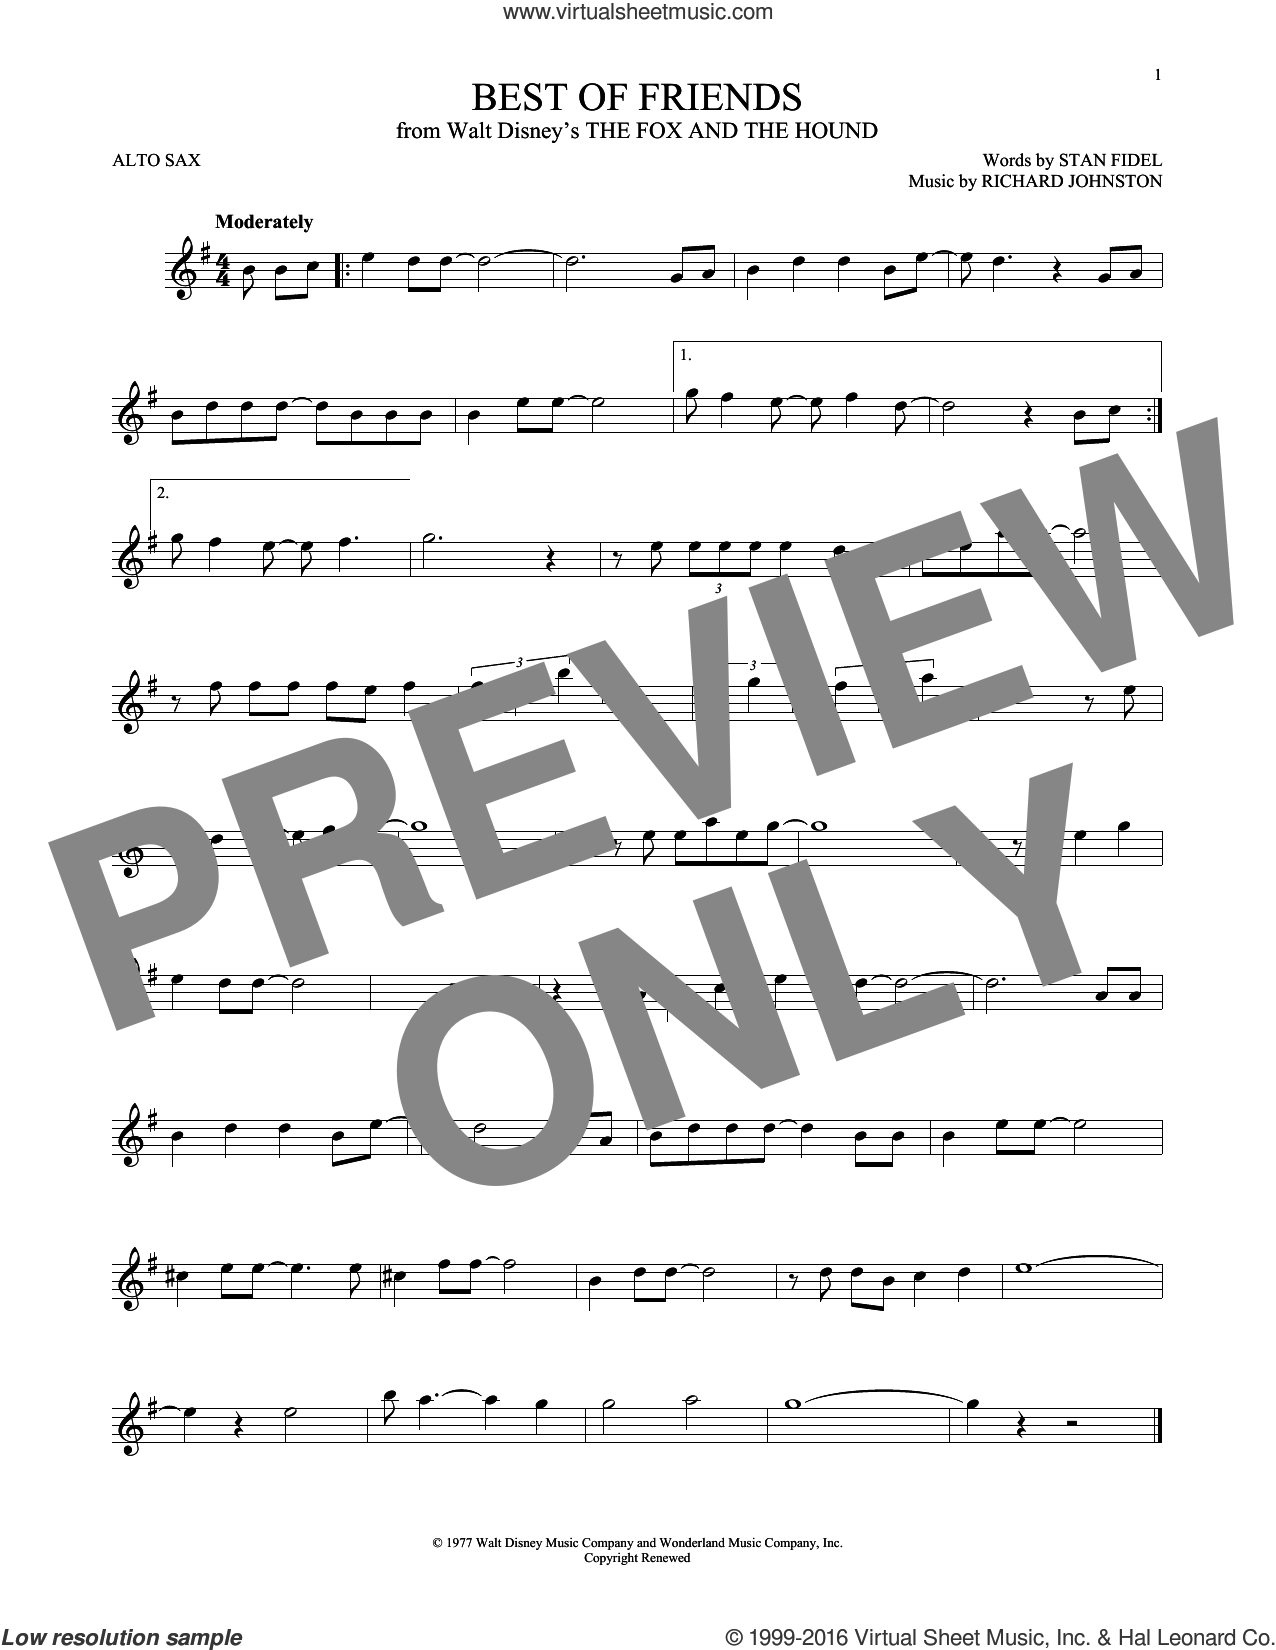 Best Of Friends sheet music for alto saxophone solo by Richard Johnston and Stan Fidel, intermediate skill level